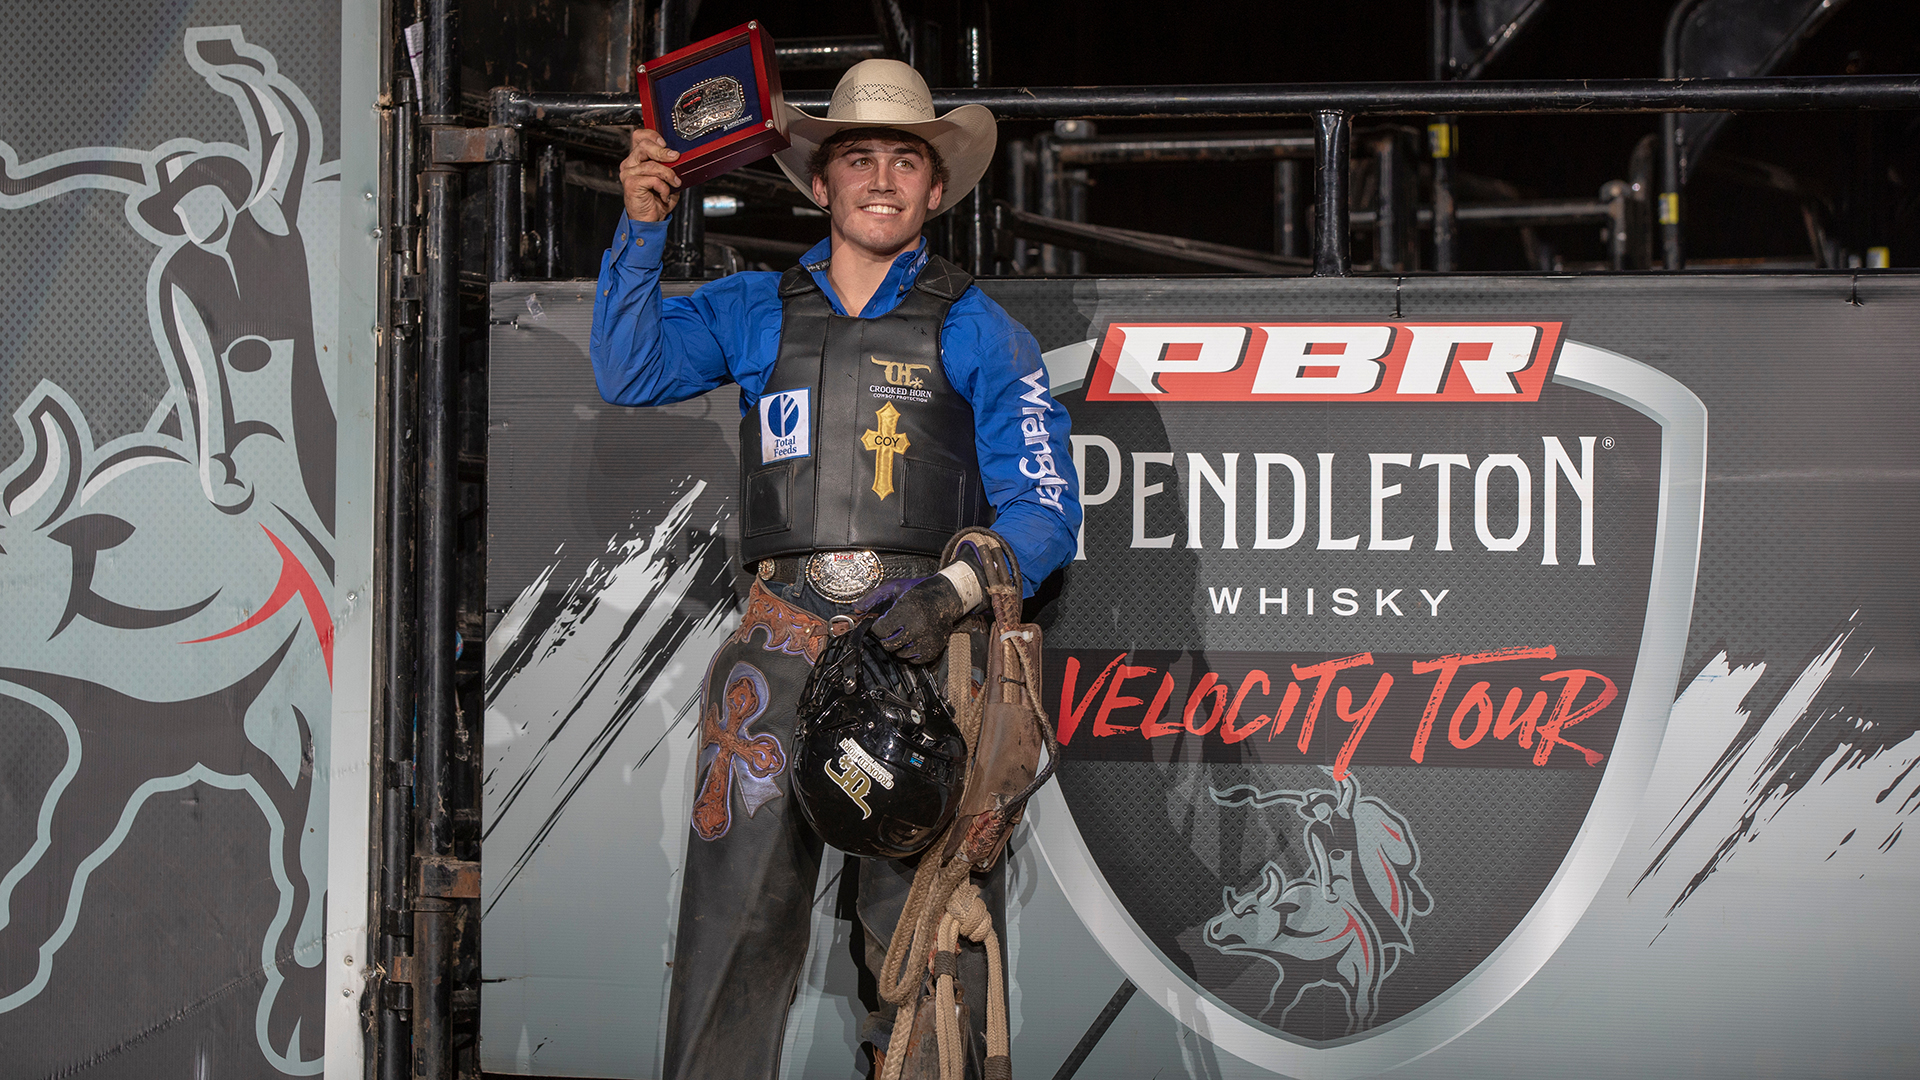 Swearingen wins career-first Pendleton Whisky Velocity Tour event in Wichita